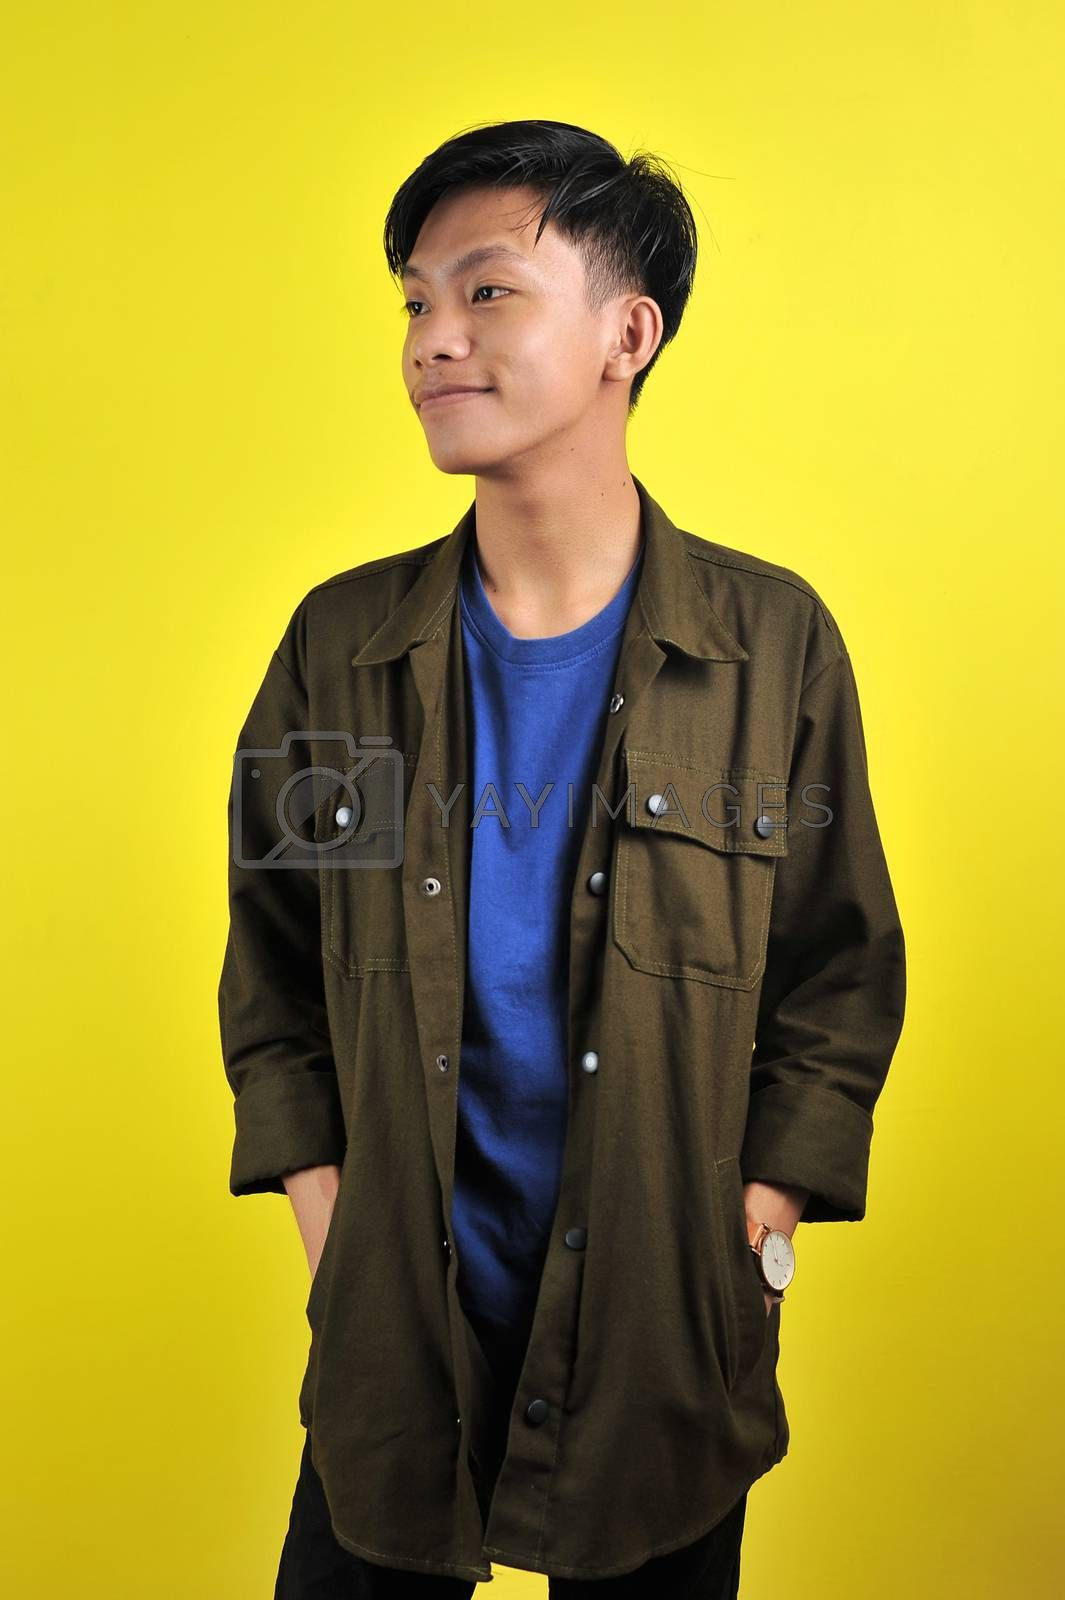 Confidence Asian young man wear casual t-shirts and jacket, isolated on yellow background